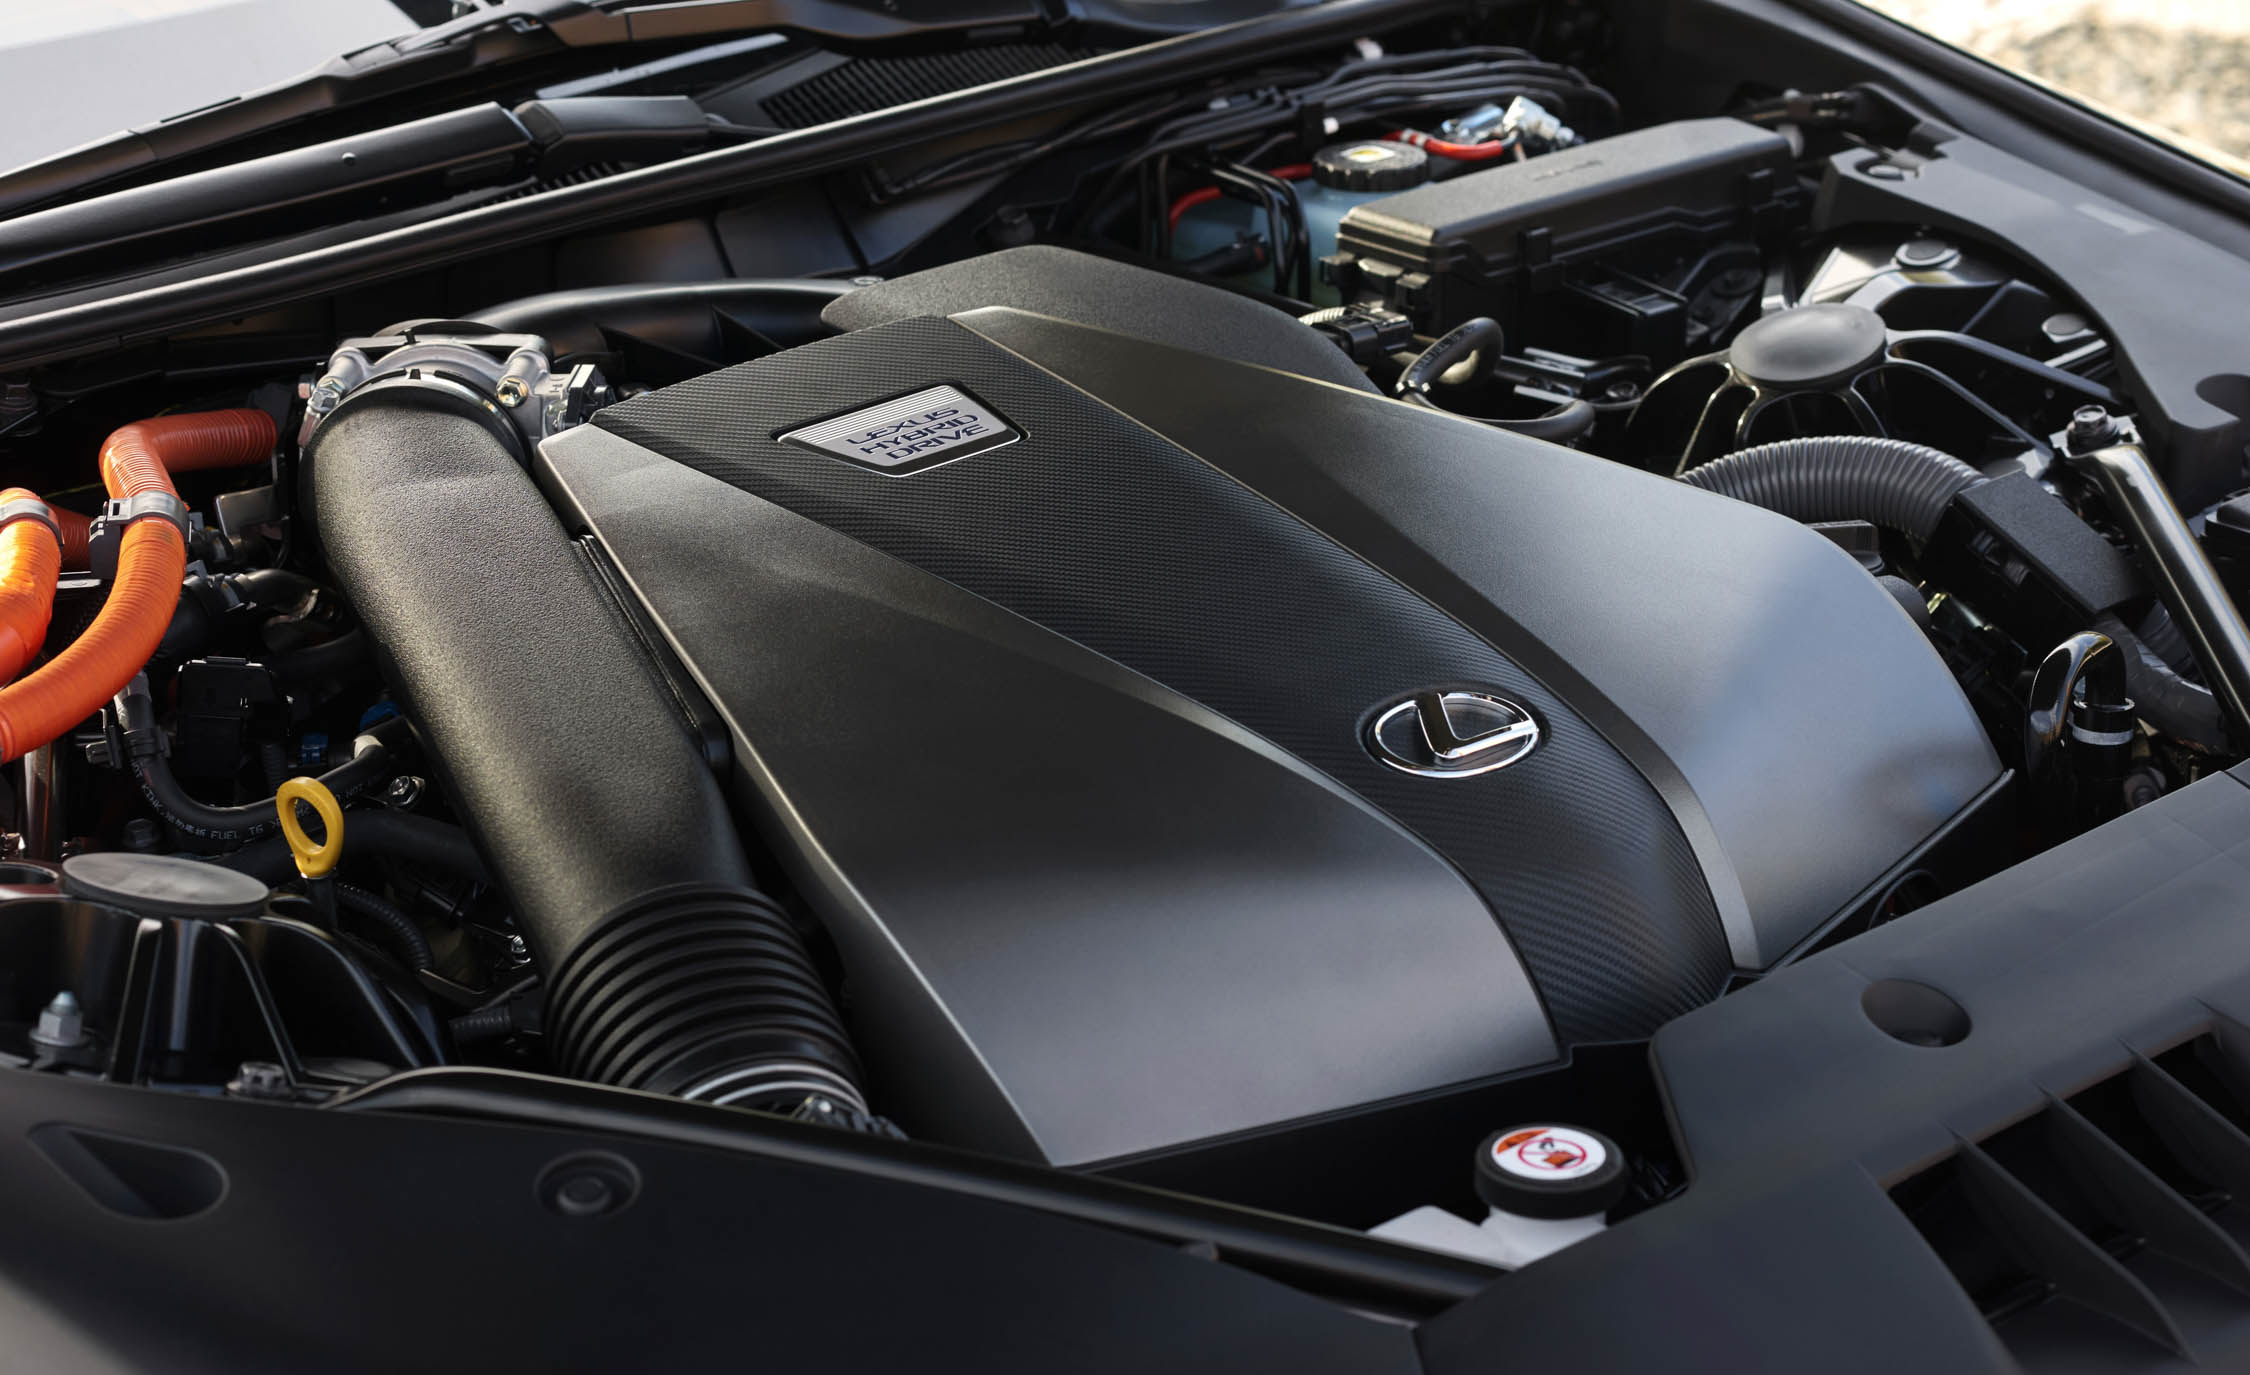 2018 Lexus Lc 500h View Engine (View 32 of 84)